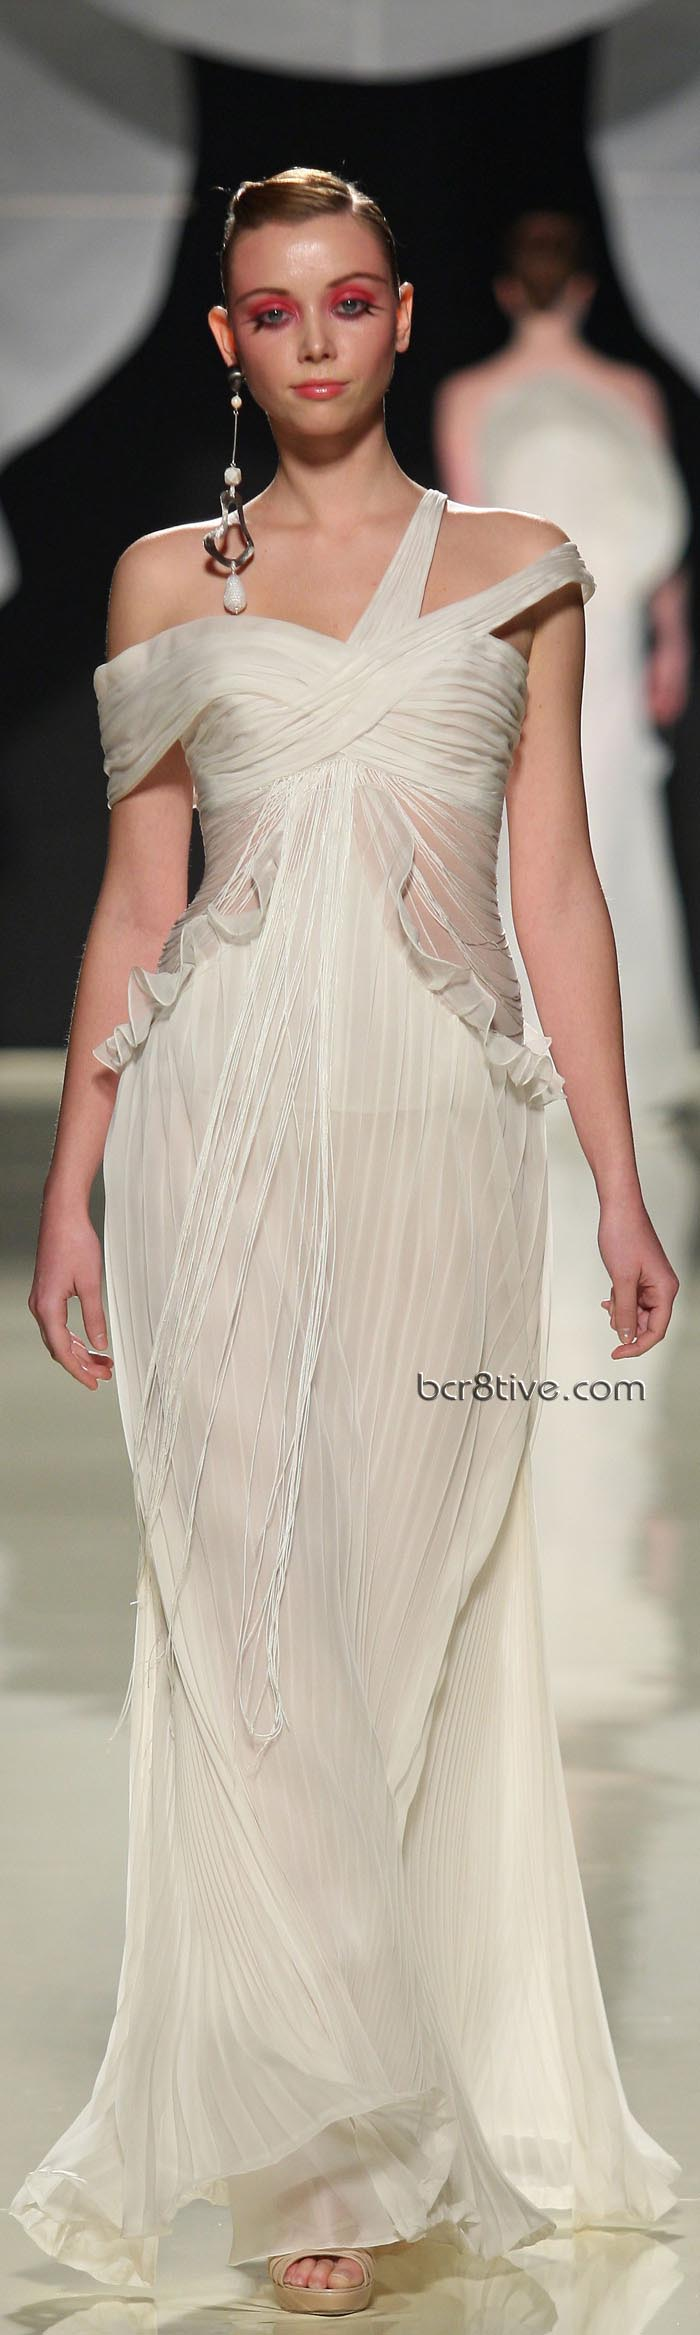 Gattinoni Spring Summer 2011 Couture